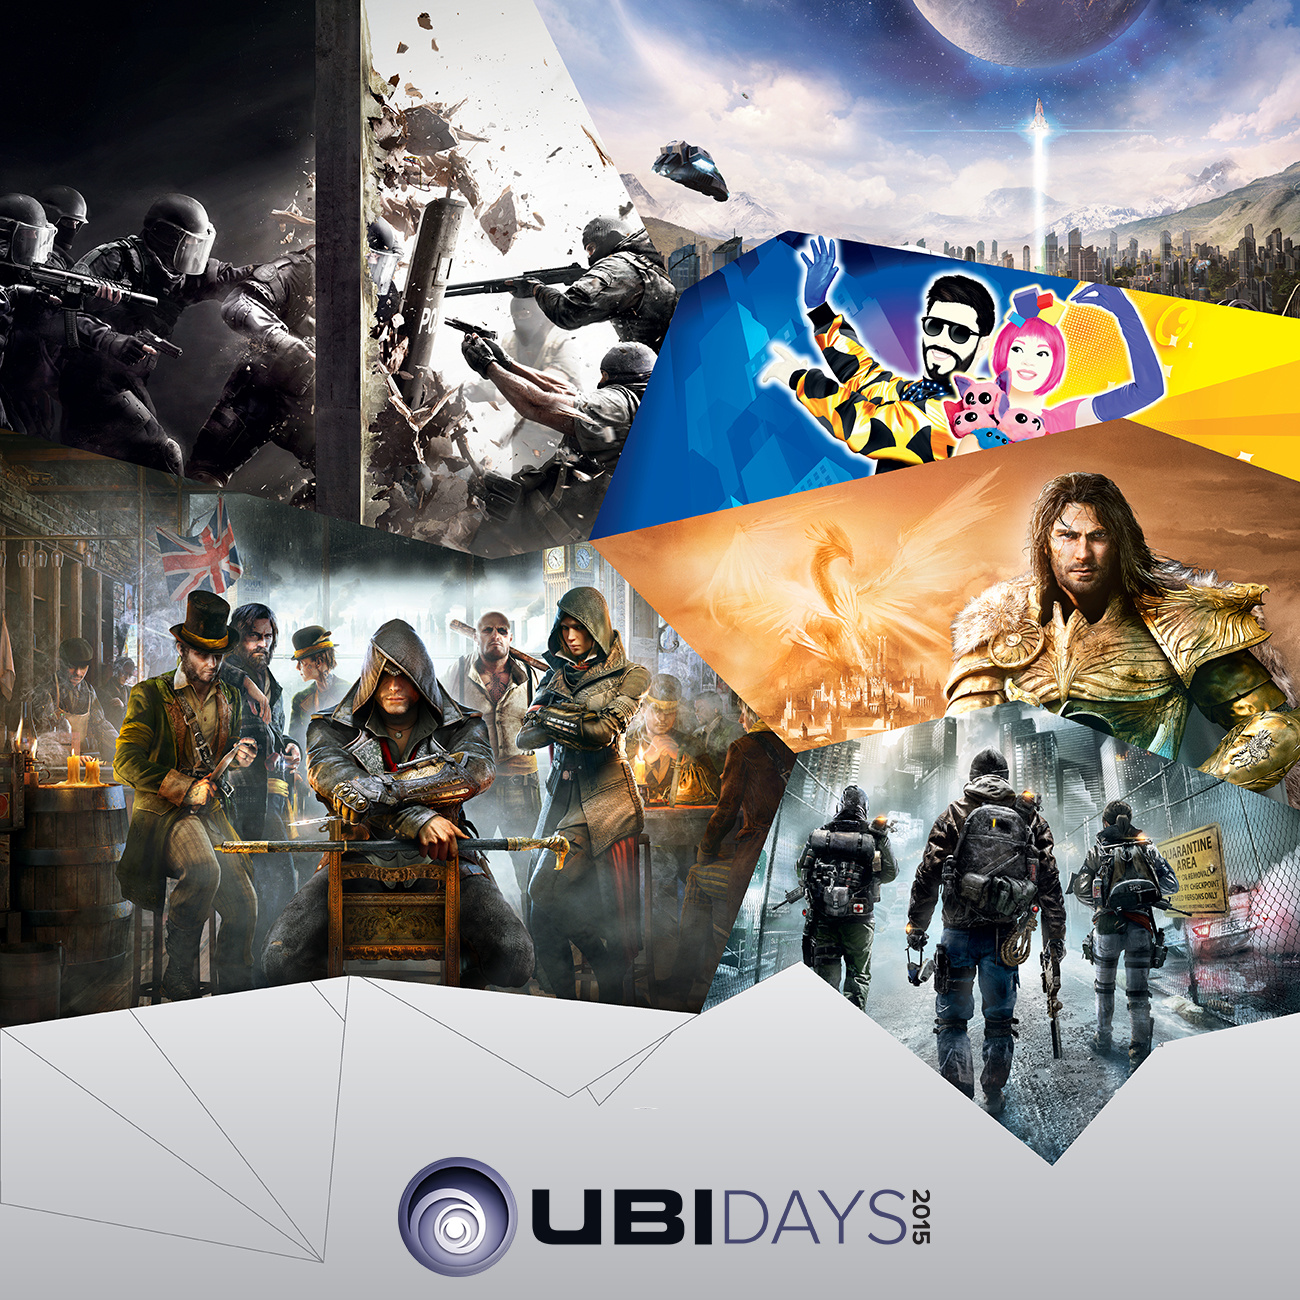 [2015-09-24] ACS_NEWS - EMEA - UbiDays 2015 - thumb